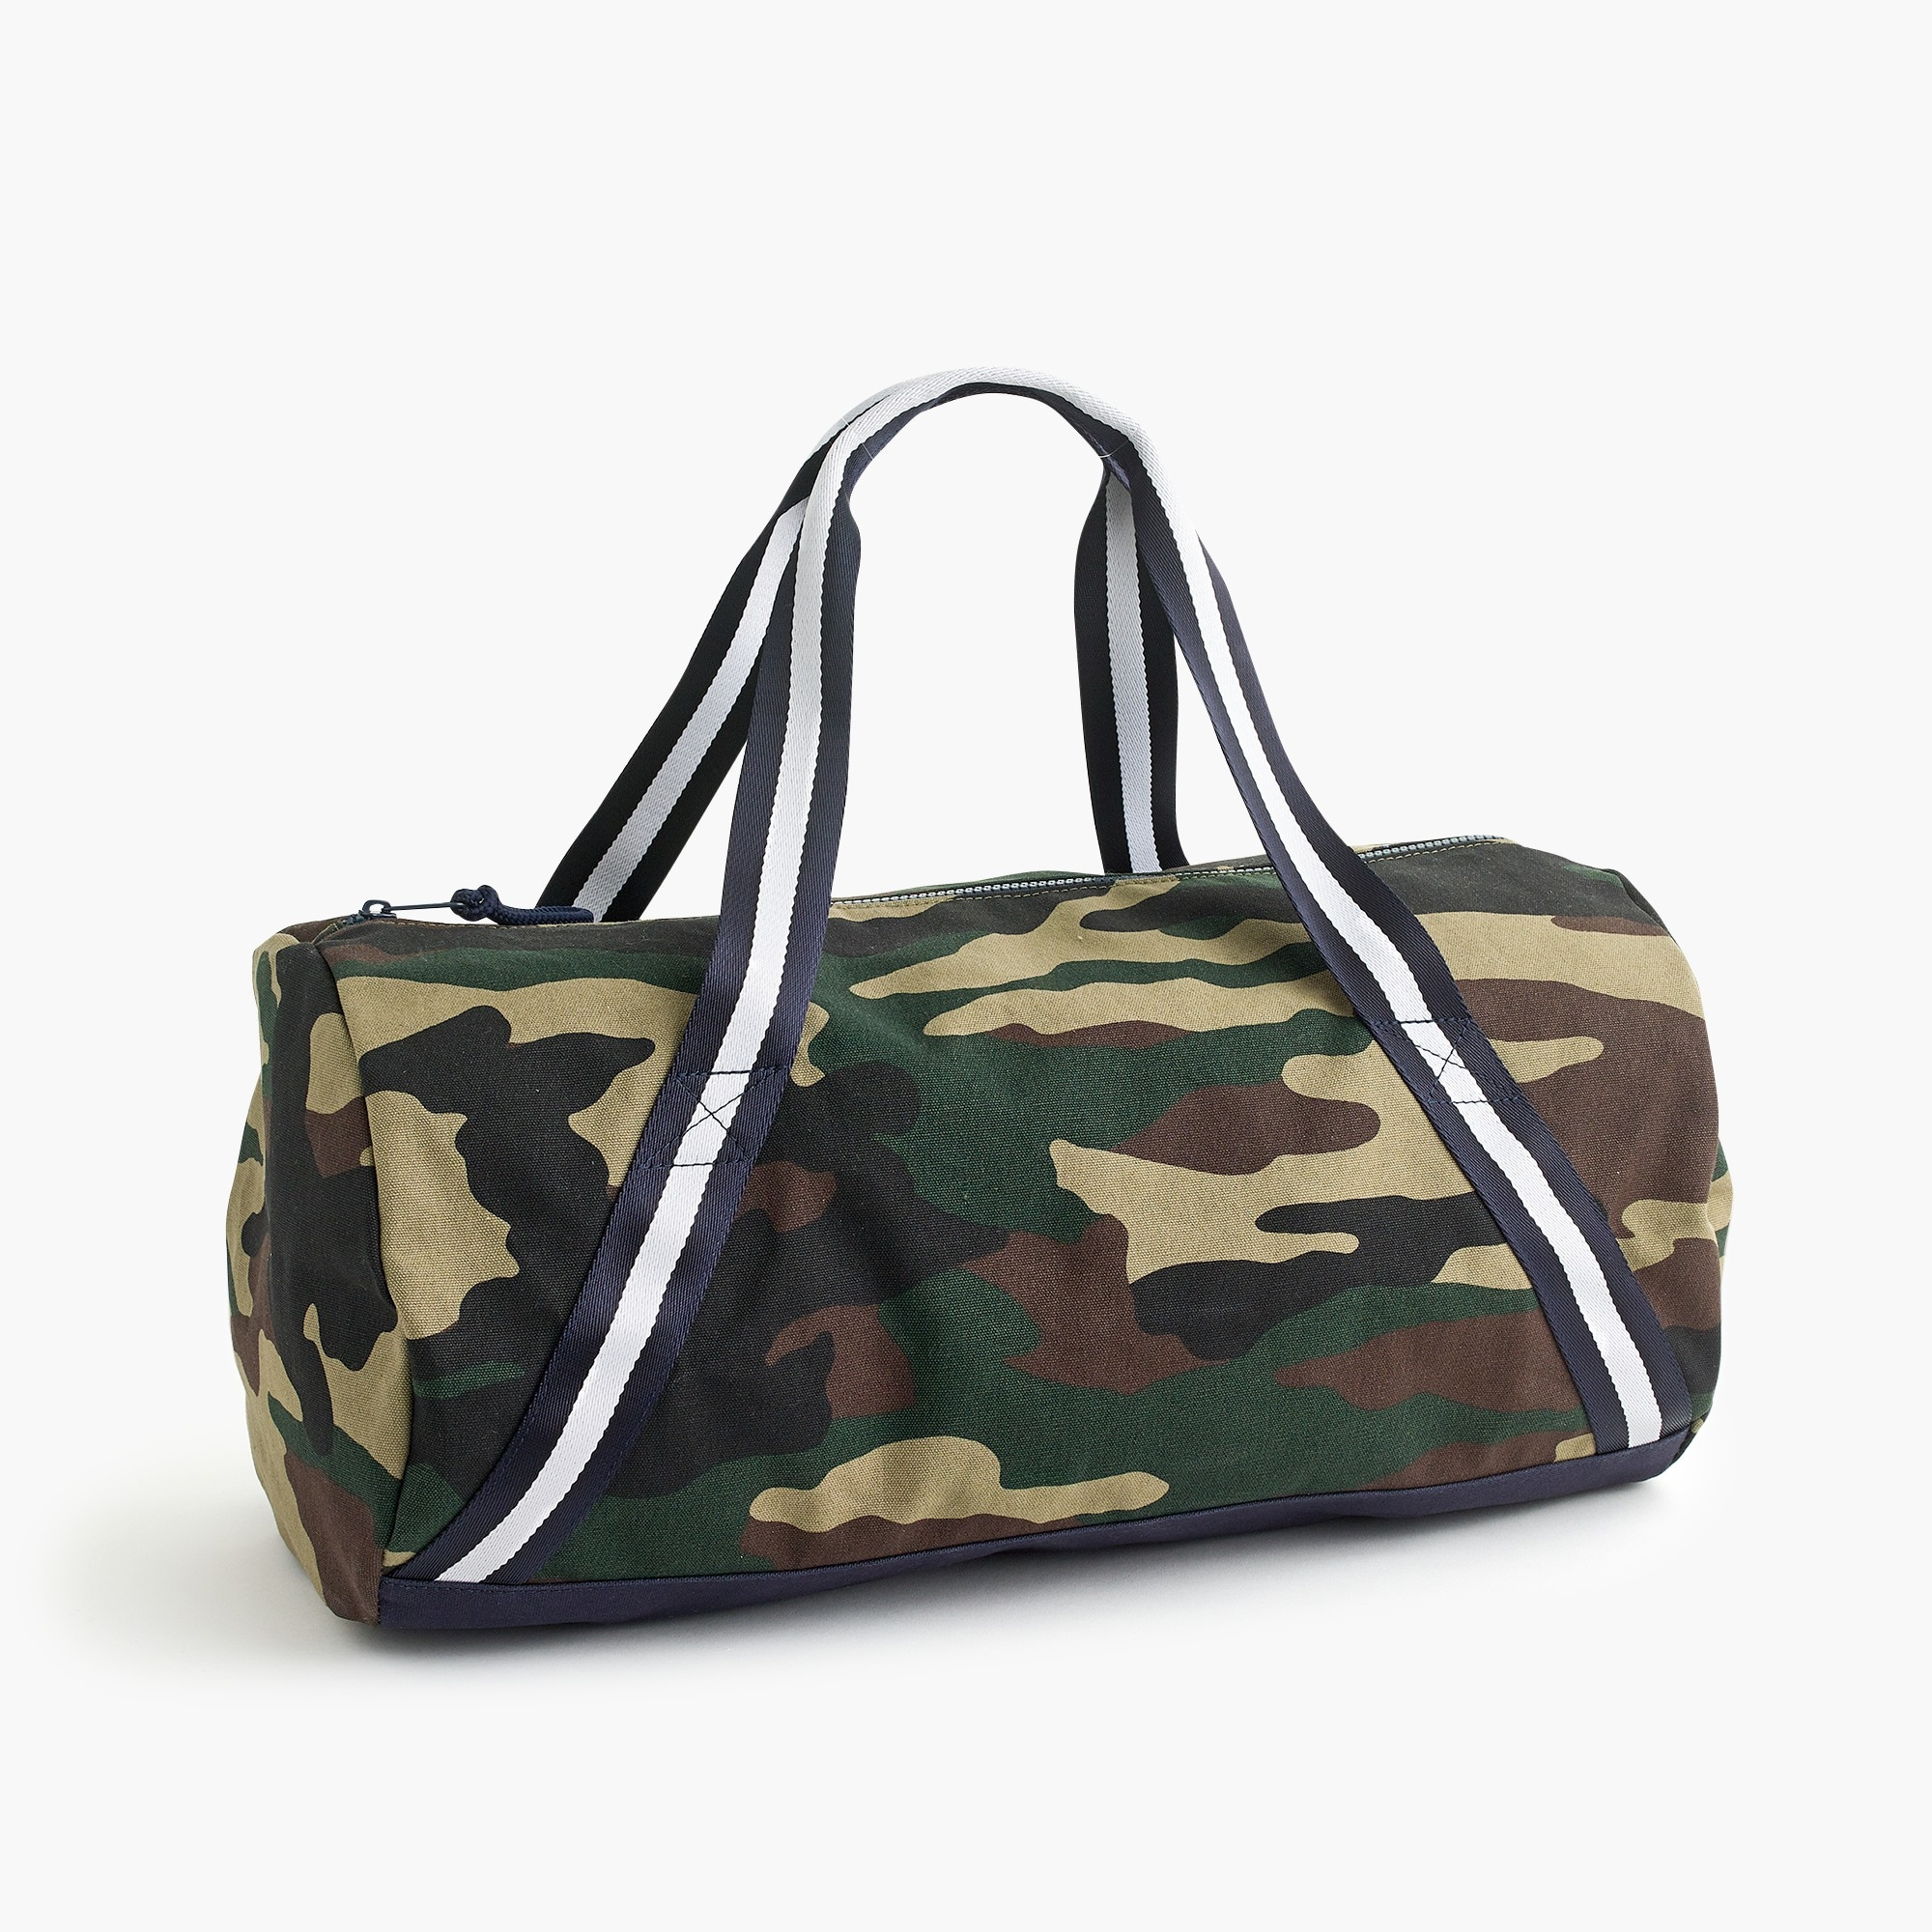 Kids' overnight bag in camo boy new arrivals c